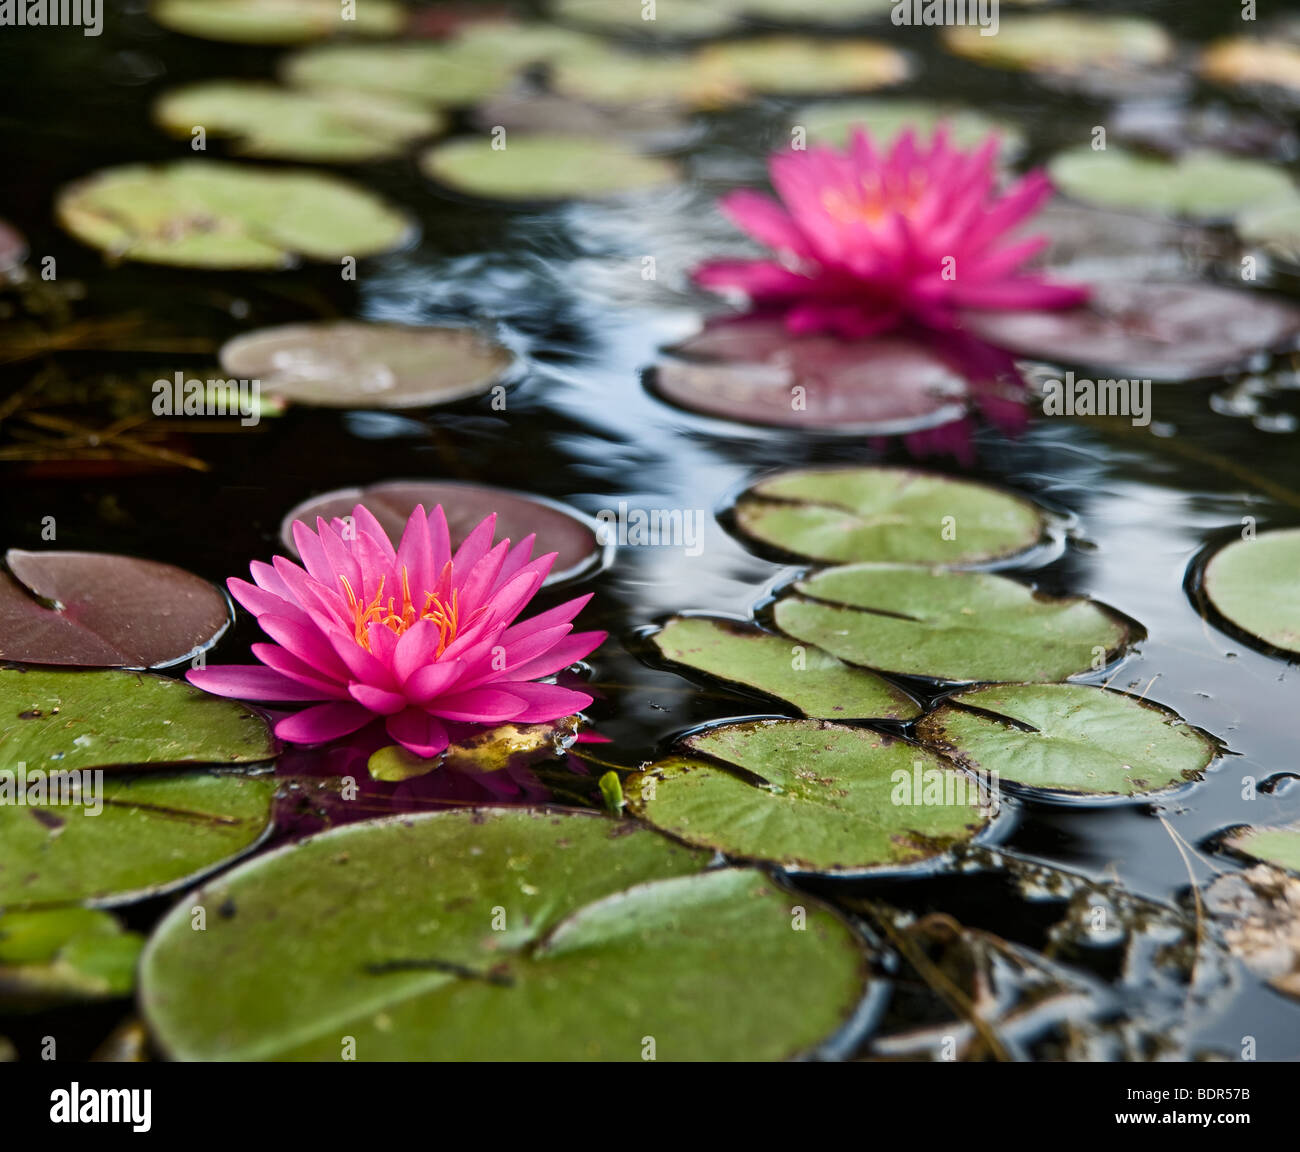 a pond with two pink water lilies - Stock Image